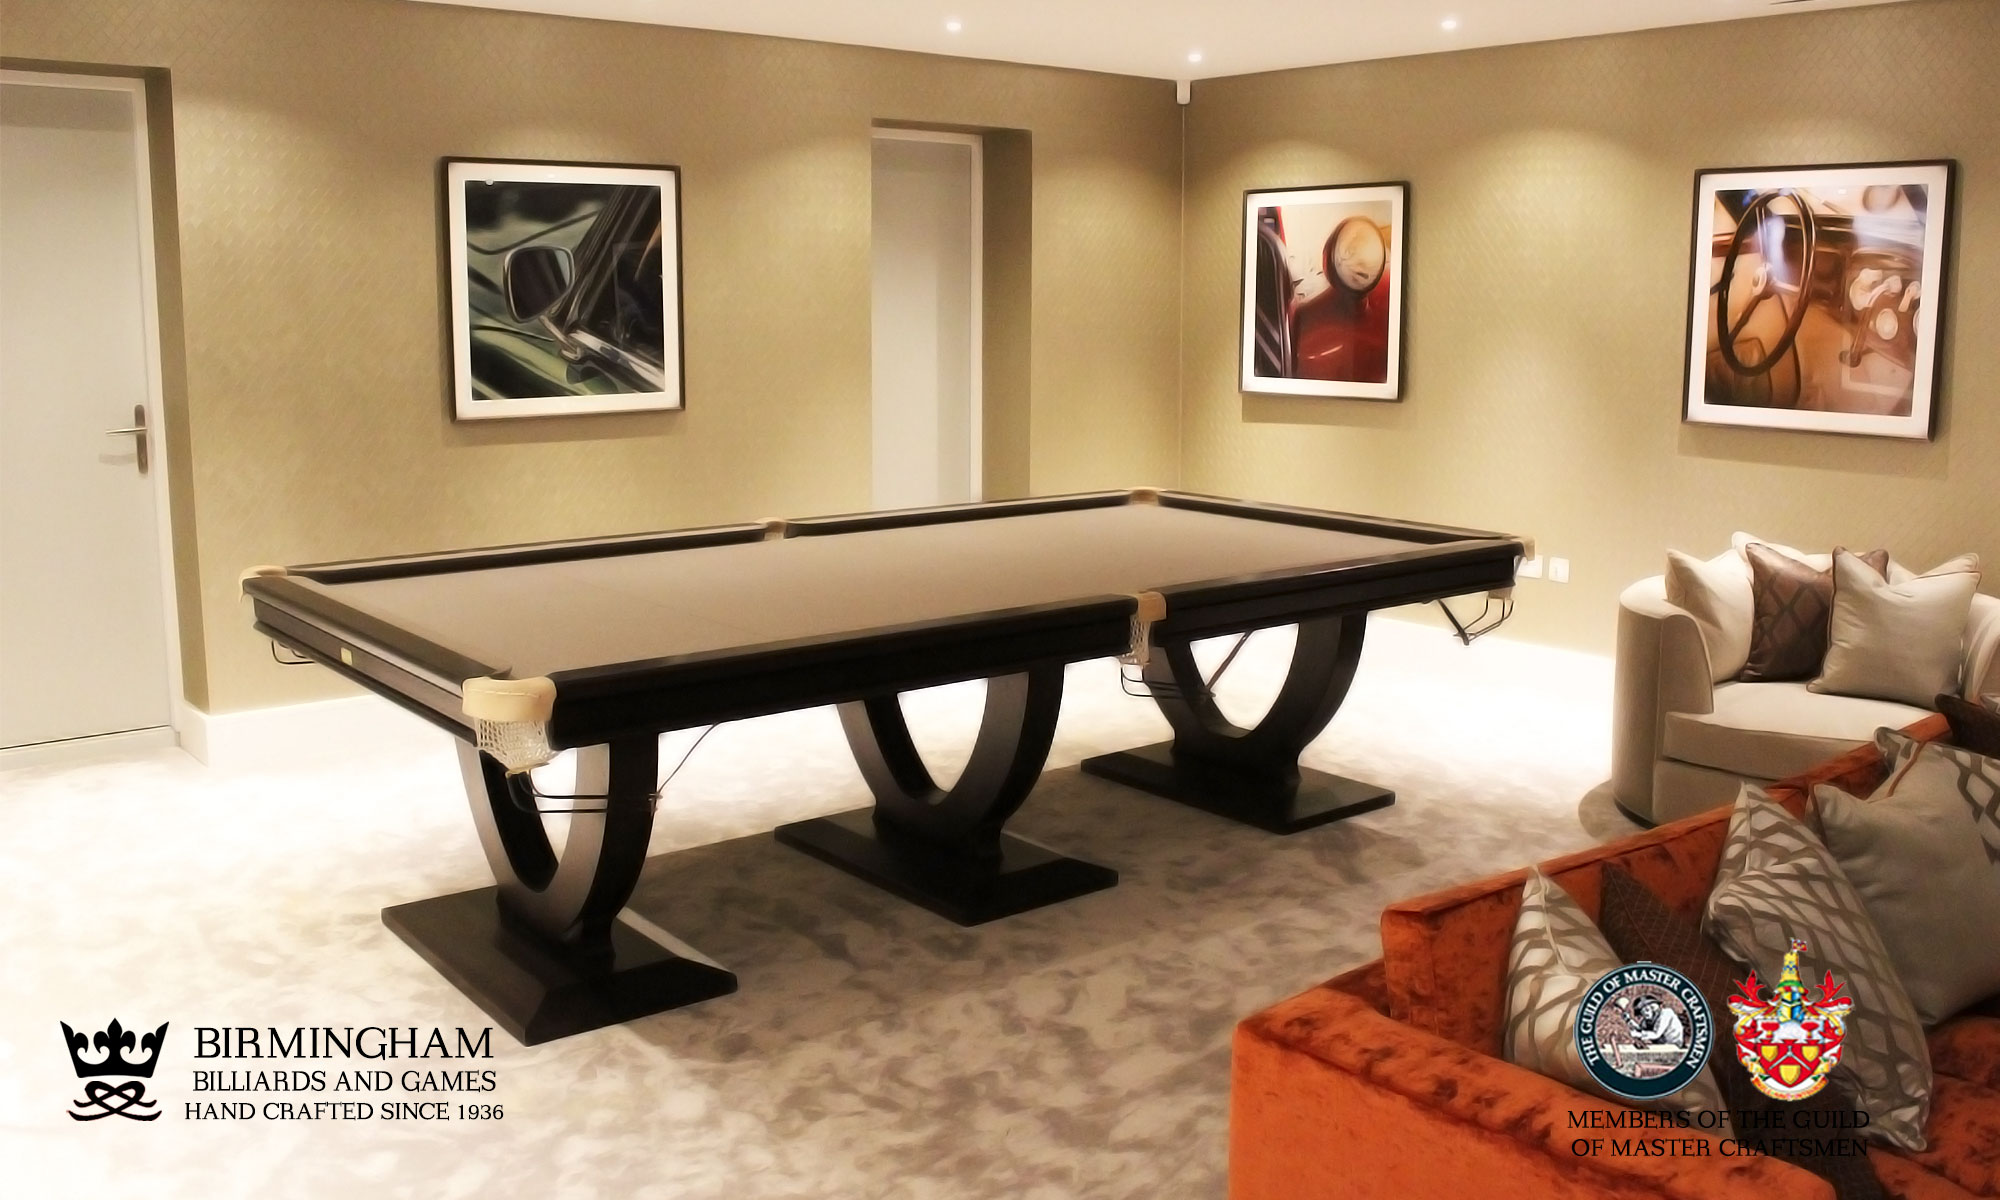 The Mayfair-Art Deco, Handmade pool table